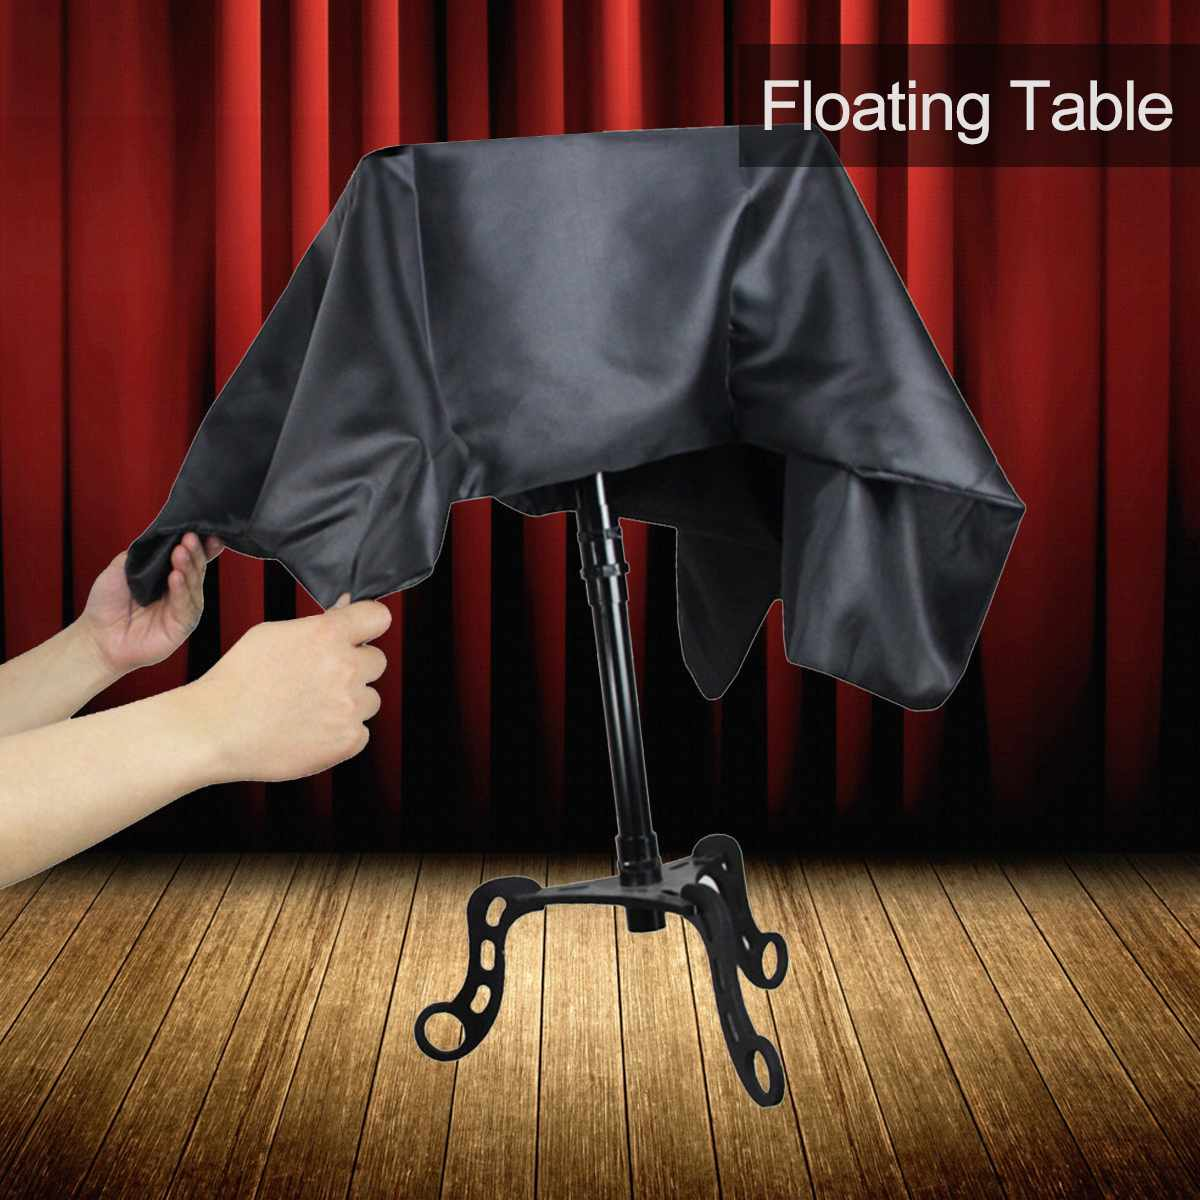 Black Floating Table Magician Levitation Trick Table Stage Magic Flying Floating Table Magic Prop Tricks Accessory Children Toy